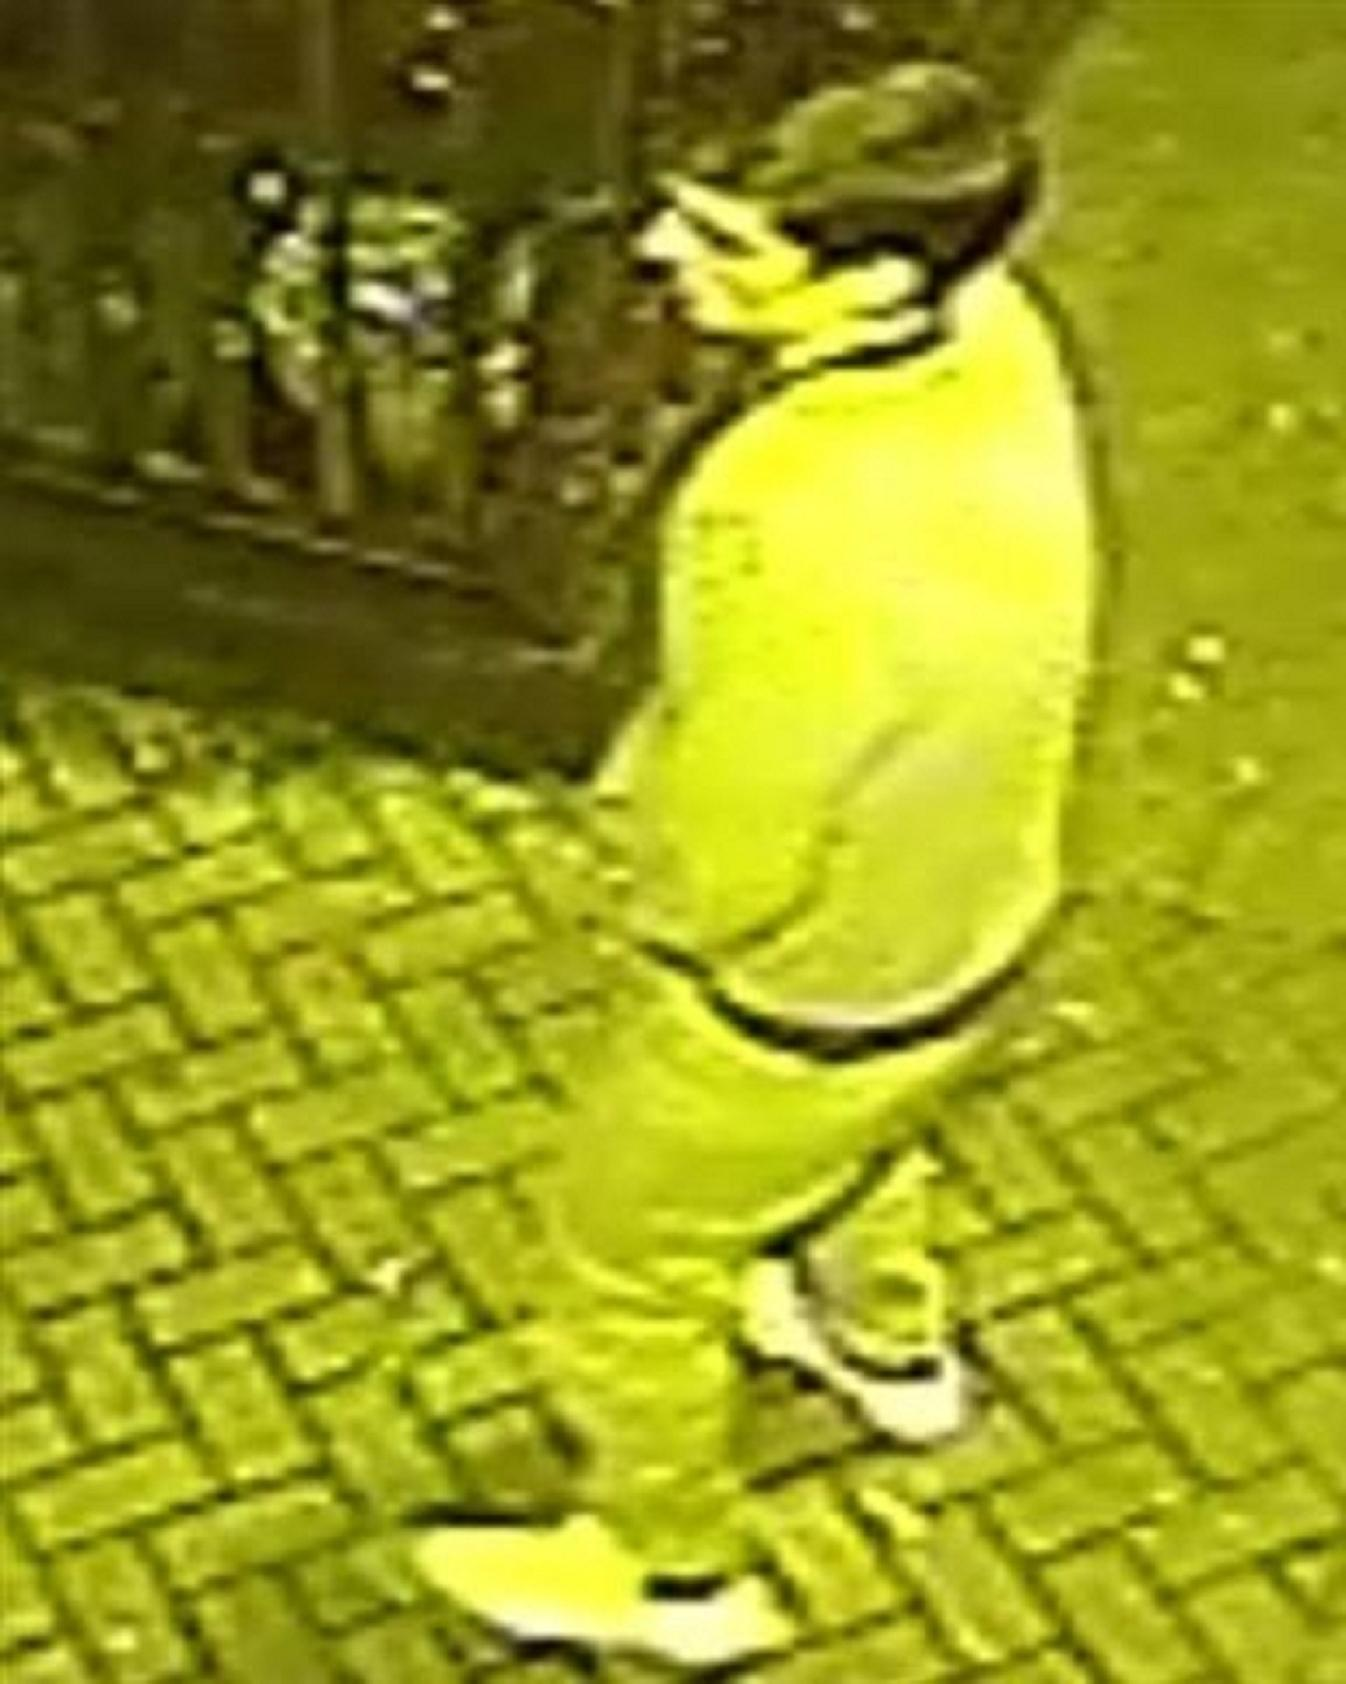 CCTV released in racist attack case